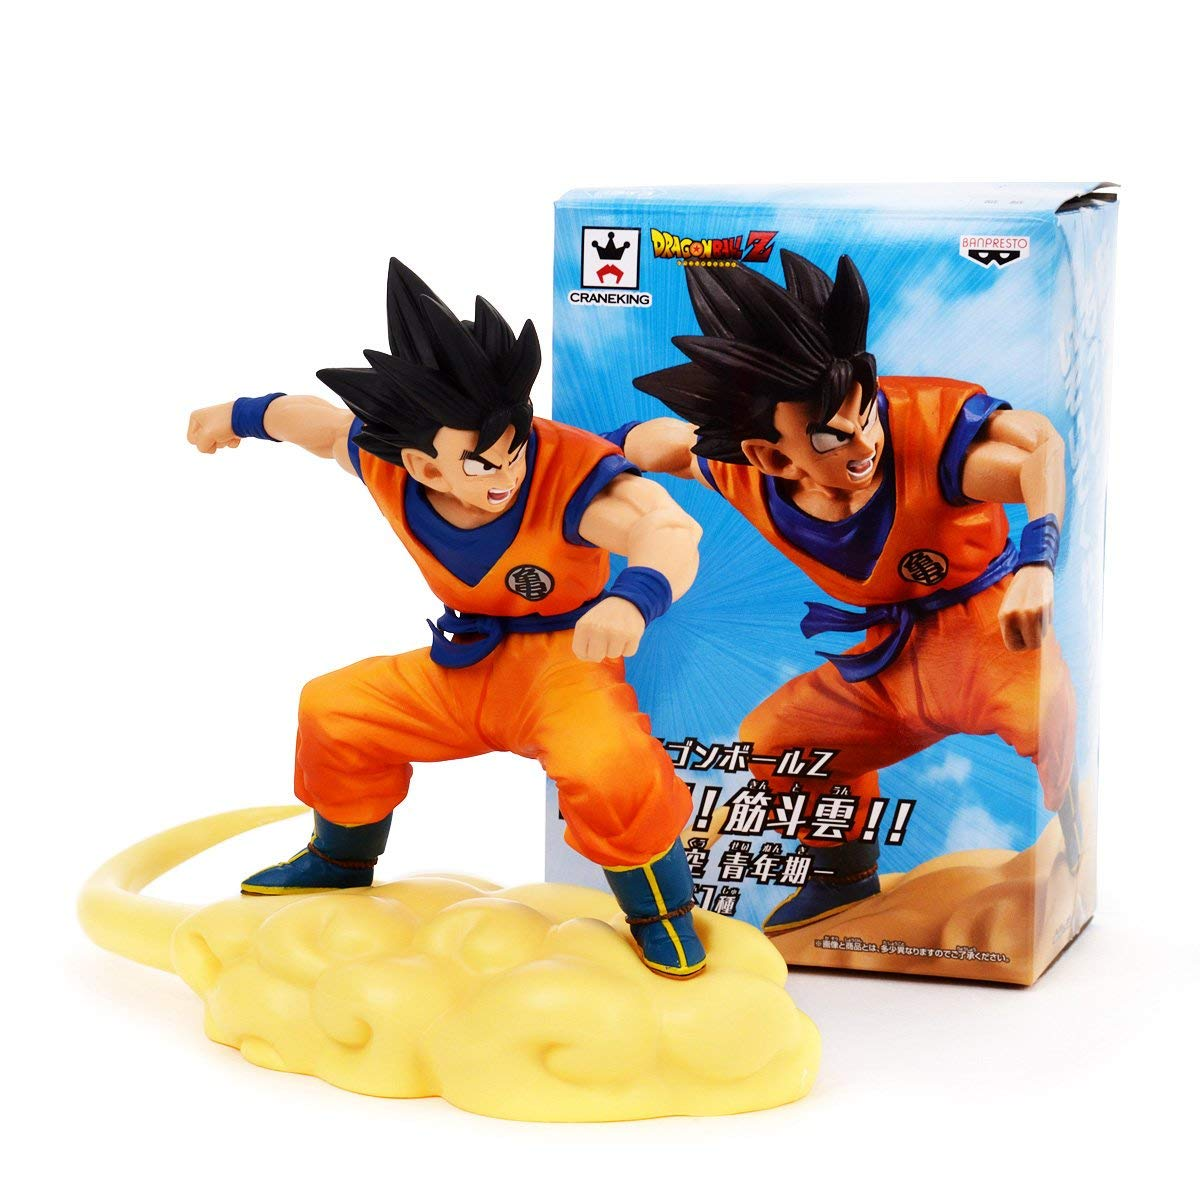 BANPRESTO 604722 Scultures Dragon Ball Z, Goku Nuage Magique Action ...